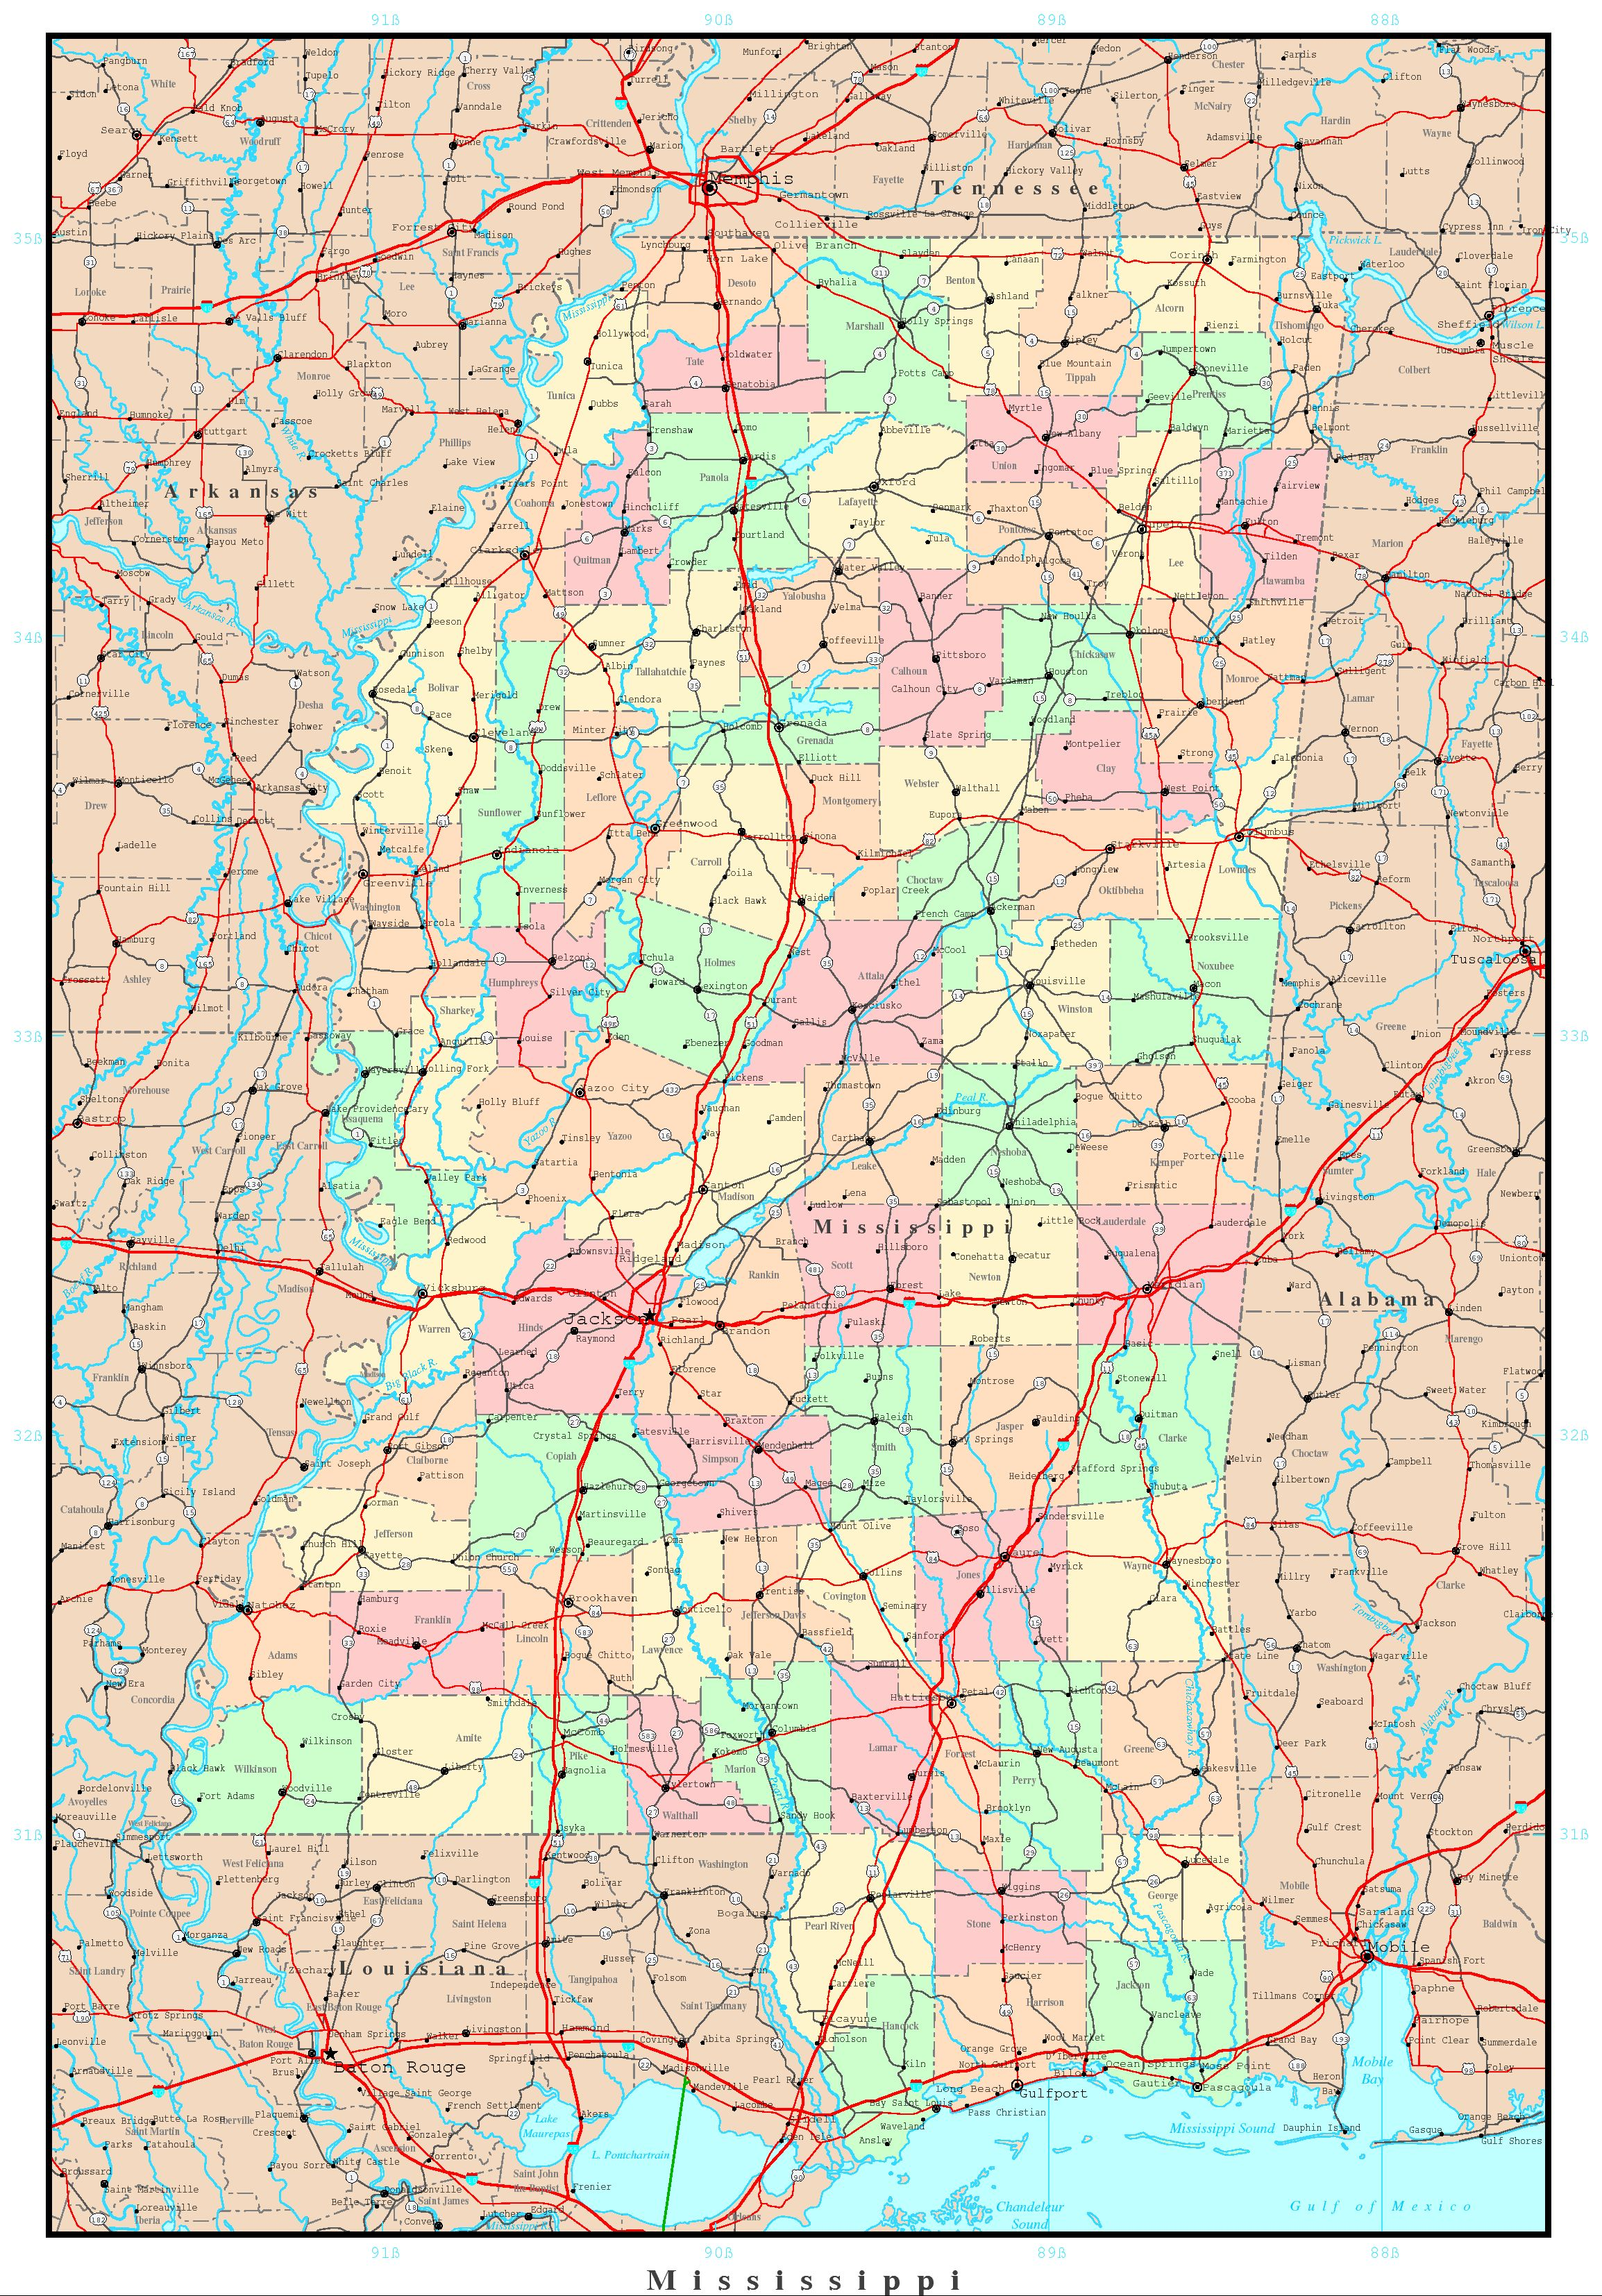 Mississippi Political Map - Missisippi map